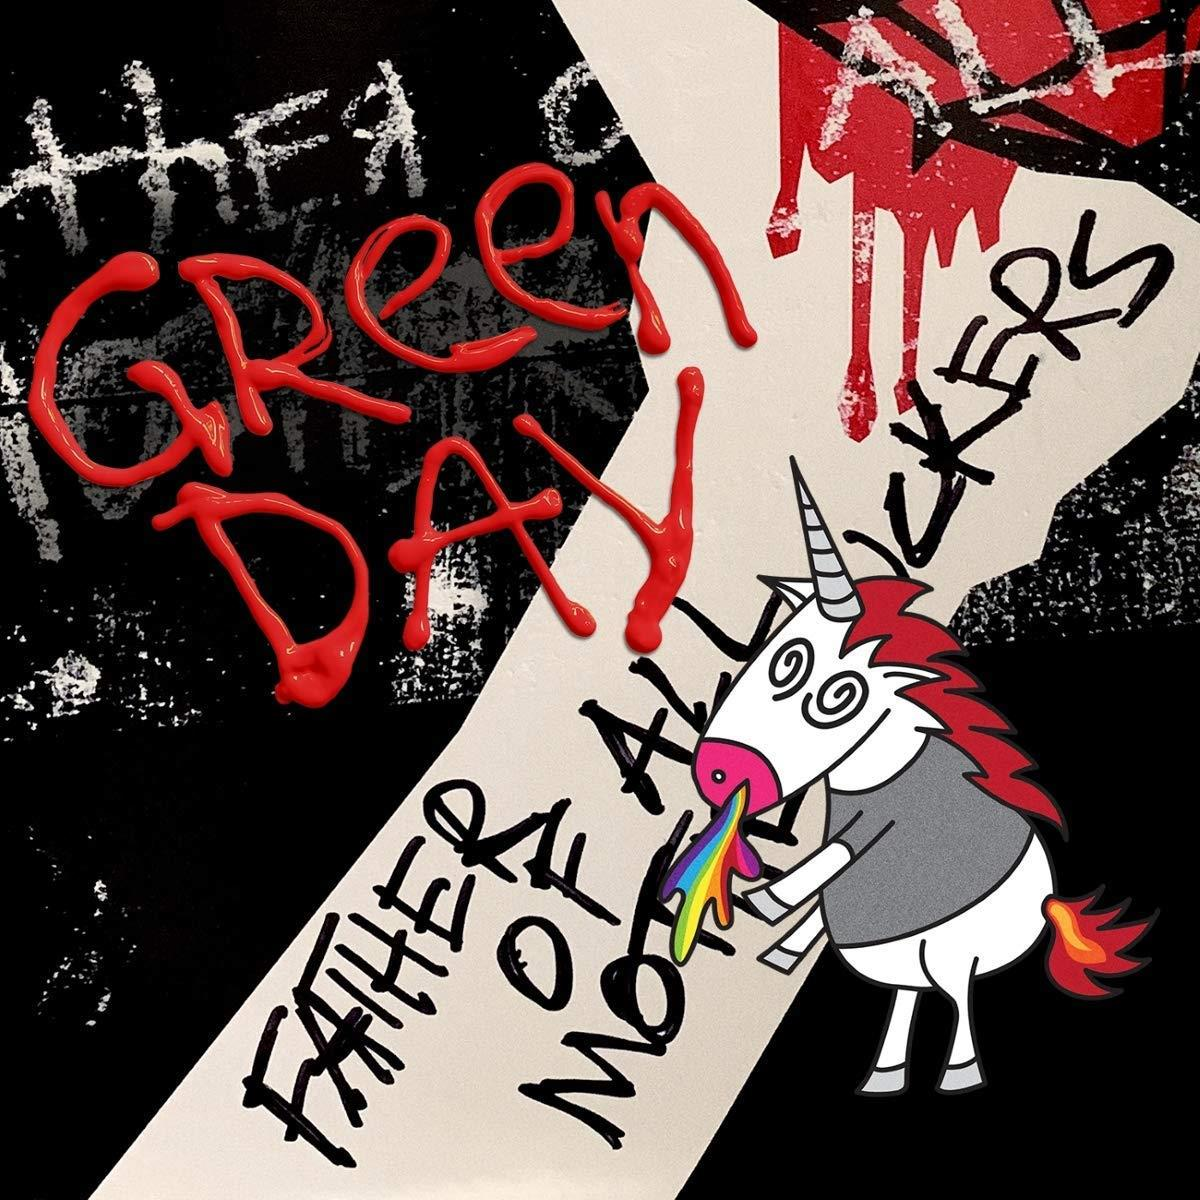 Green Day - Father of All... [LTD LP] (Cloudy Red vinyl)